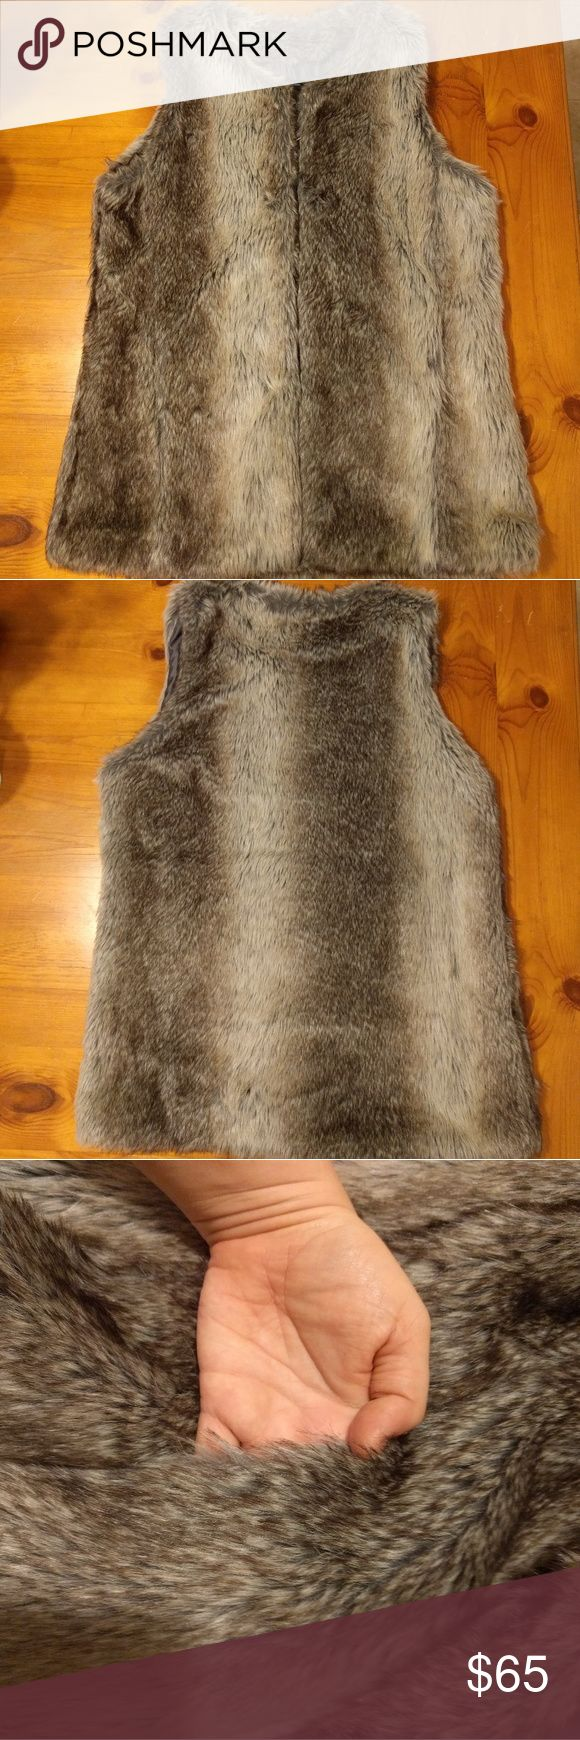 INC Faux Fur Vest New without tags, Macy's INC International Concepts, size M/L faux fur vest! Has two front pockets and secures with three hidden hook and eye closures spanning bust and waist. Vest is lined and very warm! INC International Concepts Jackets & Coats Vests